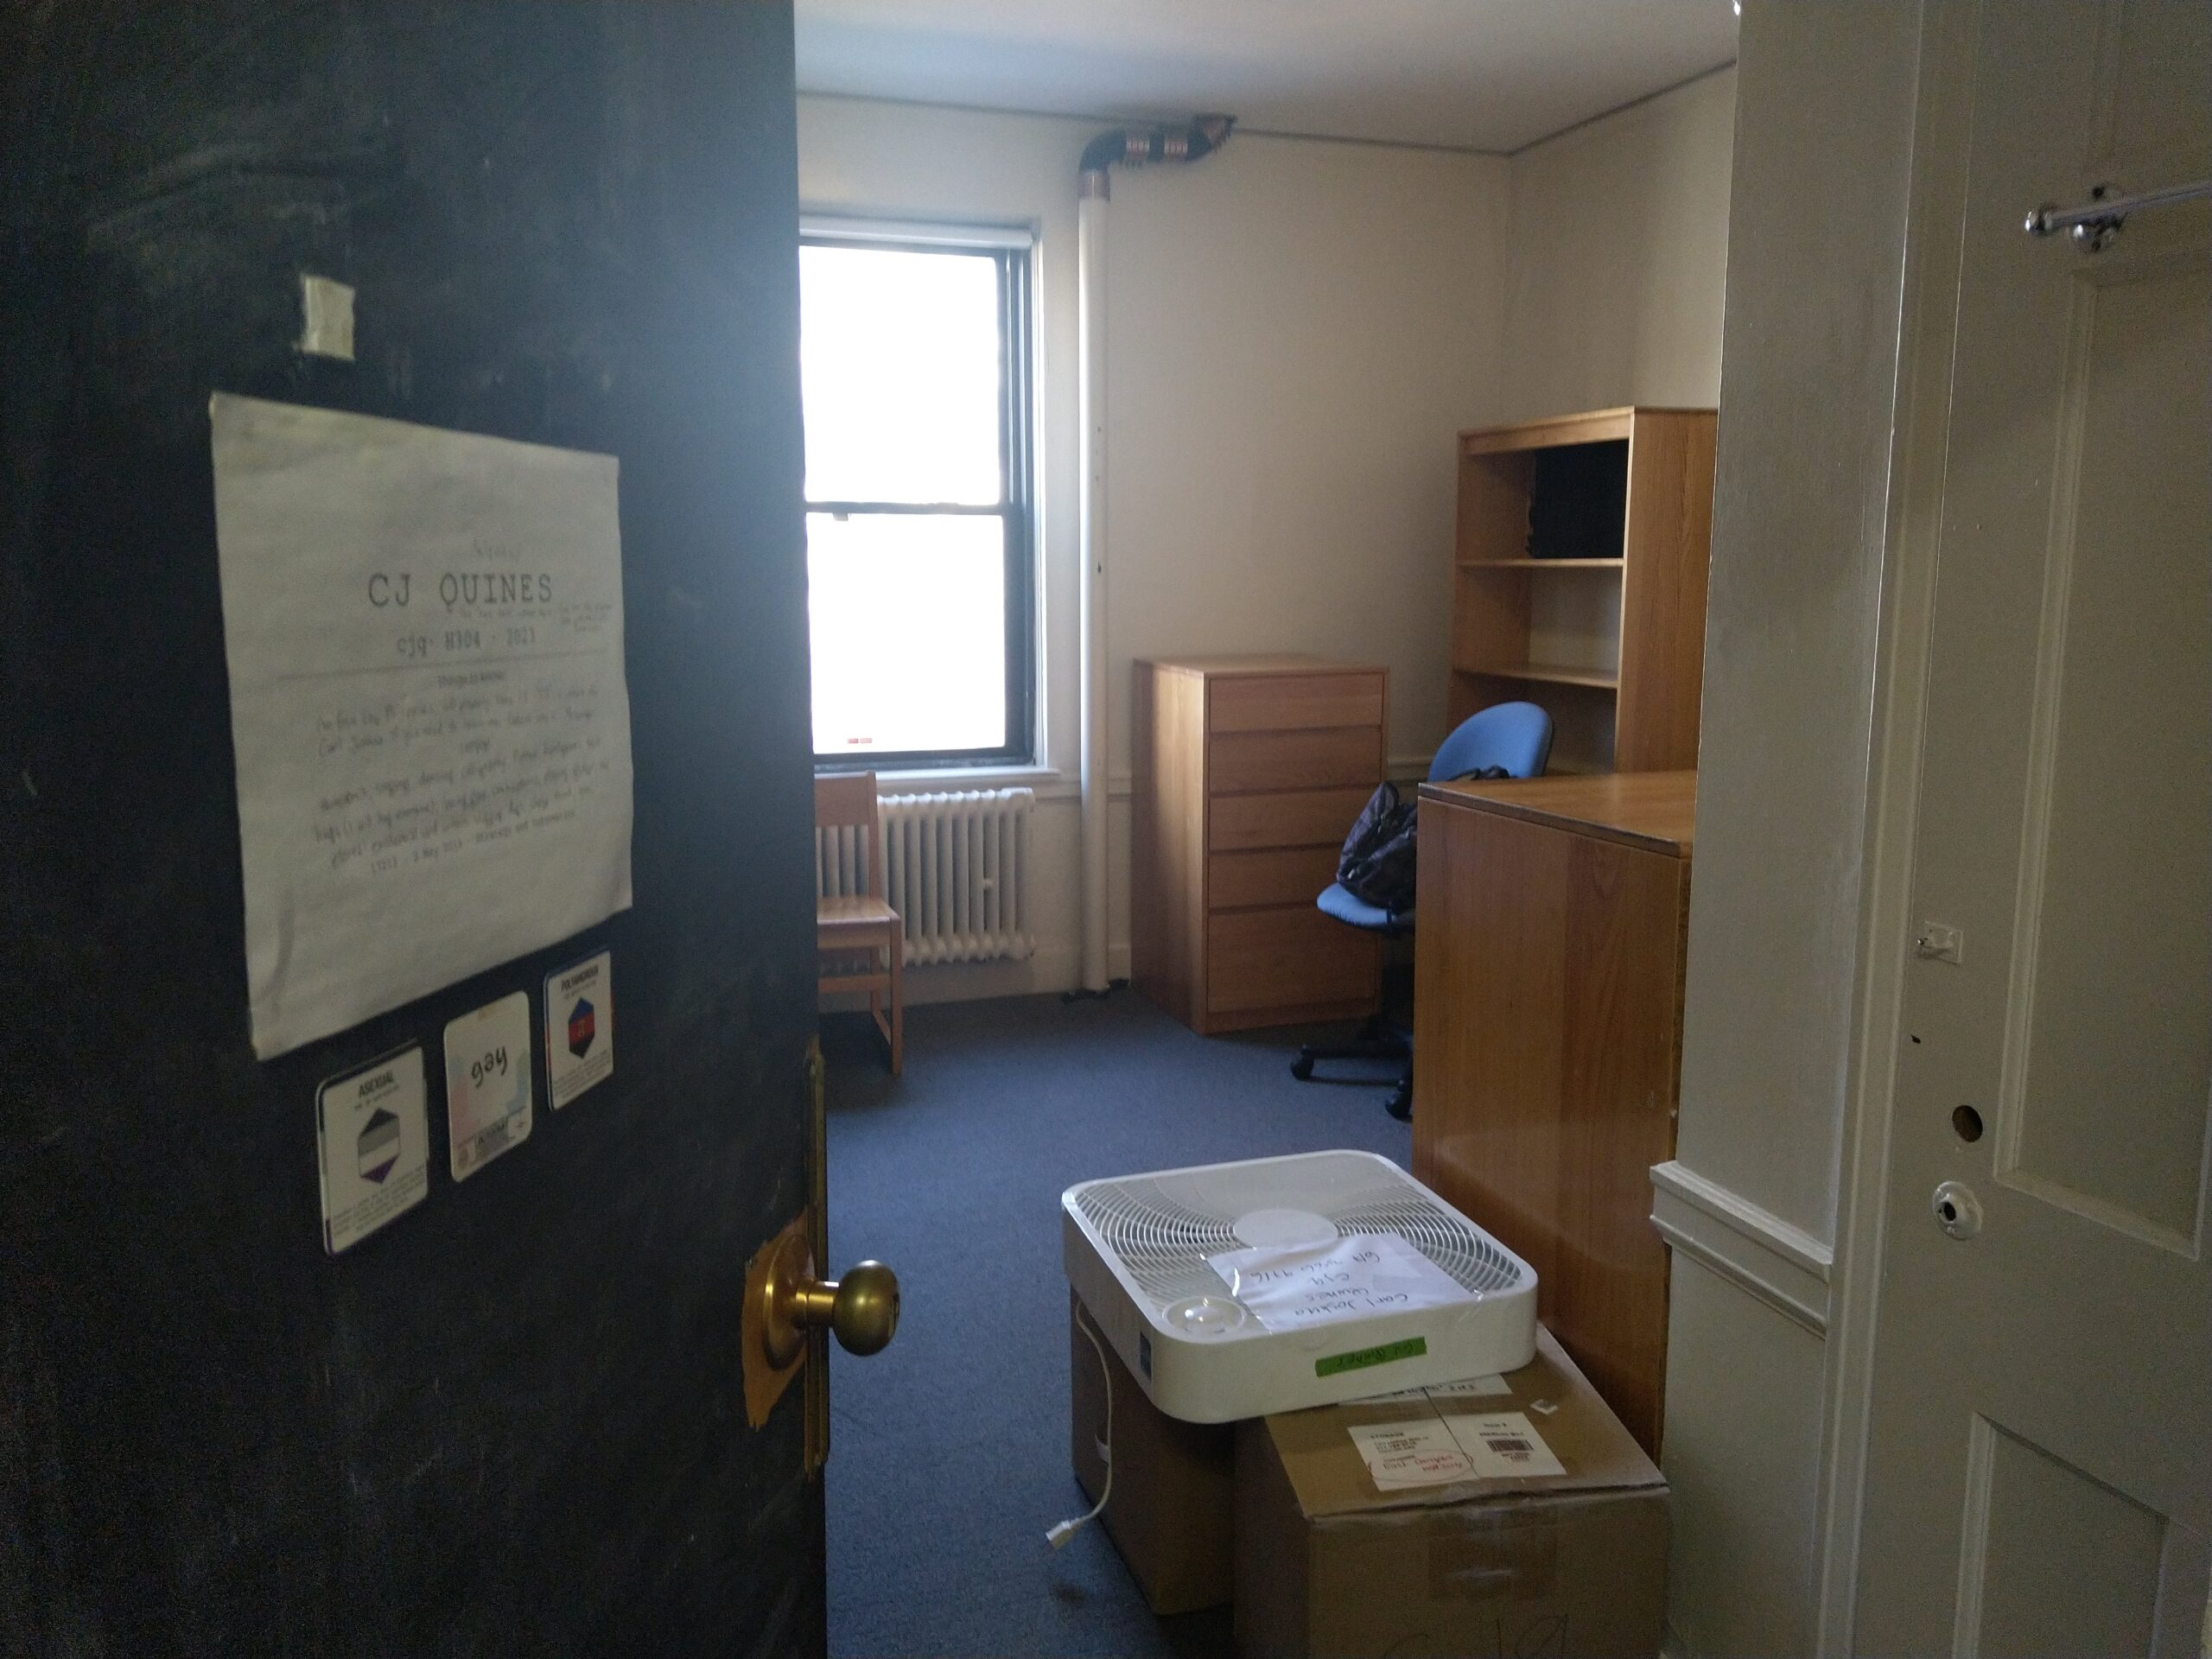 my room in east campus, empty, with two boxes on the floor